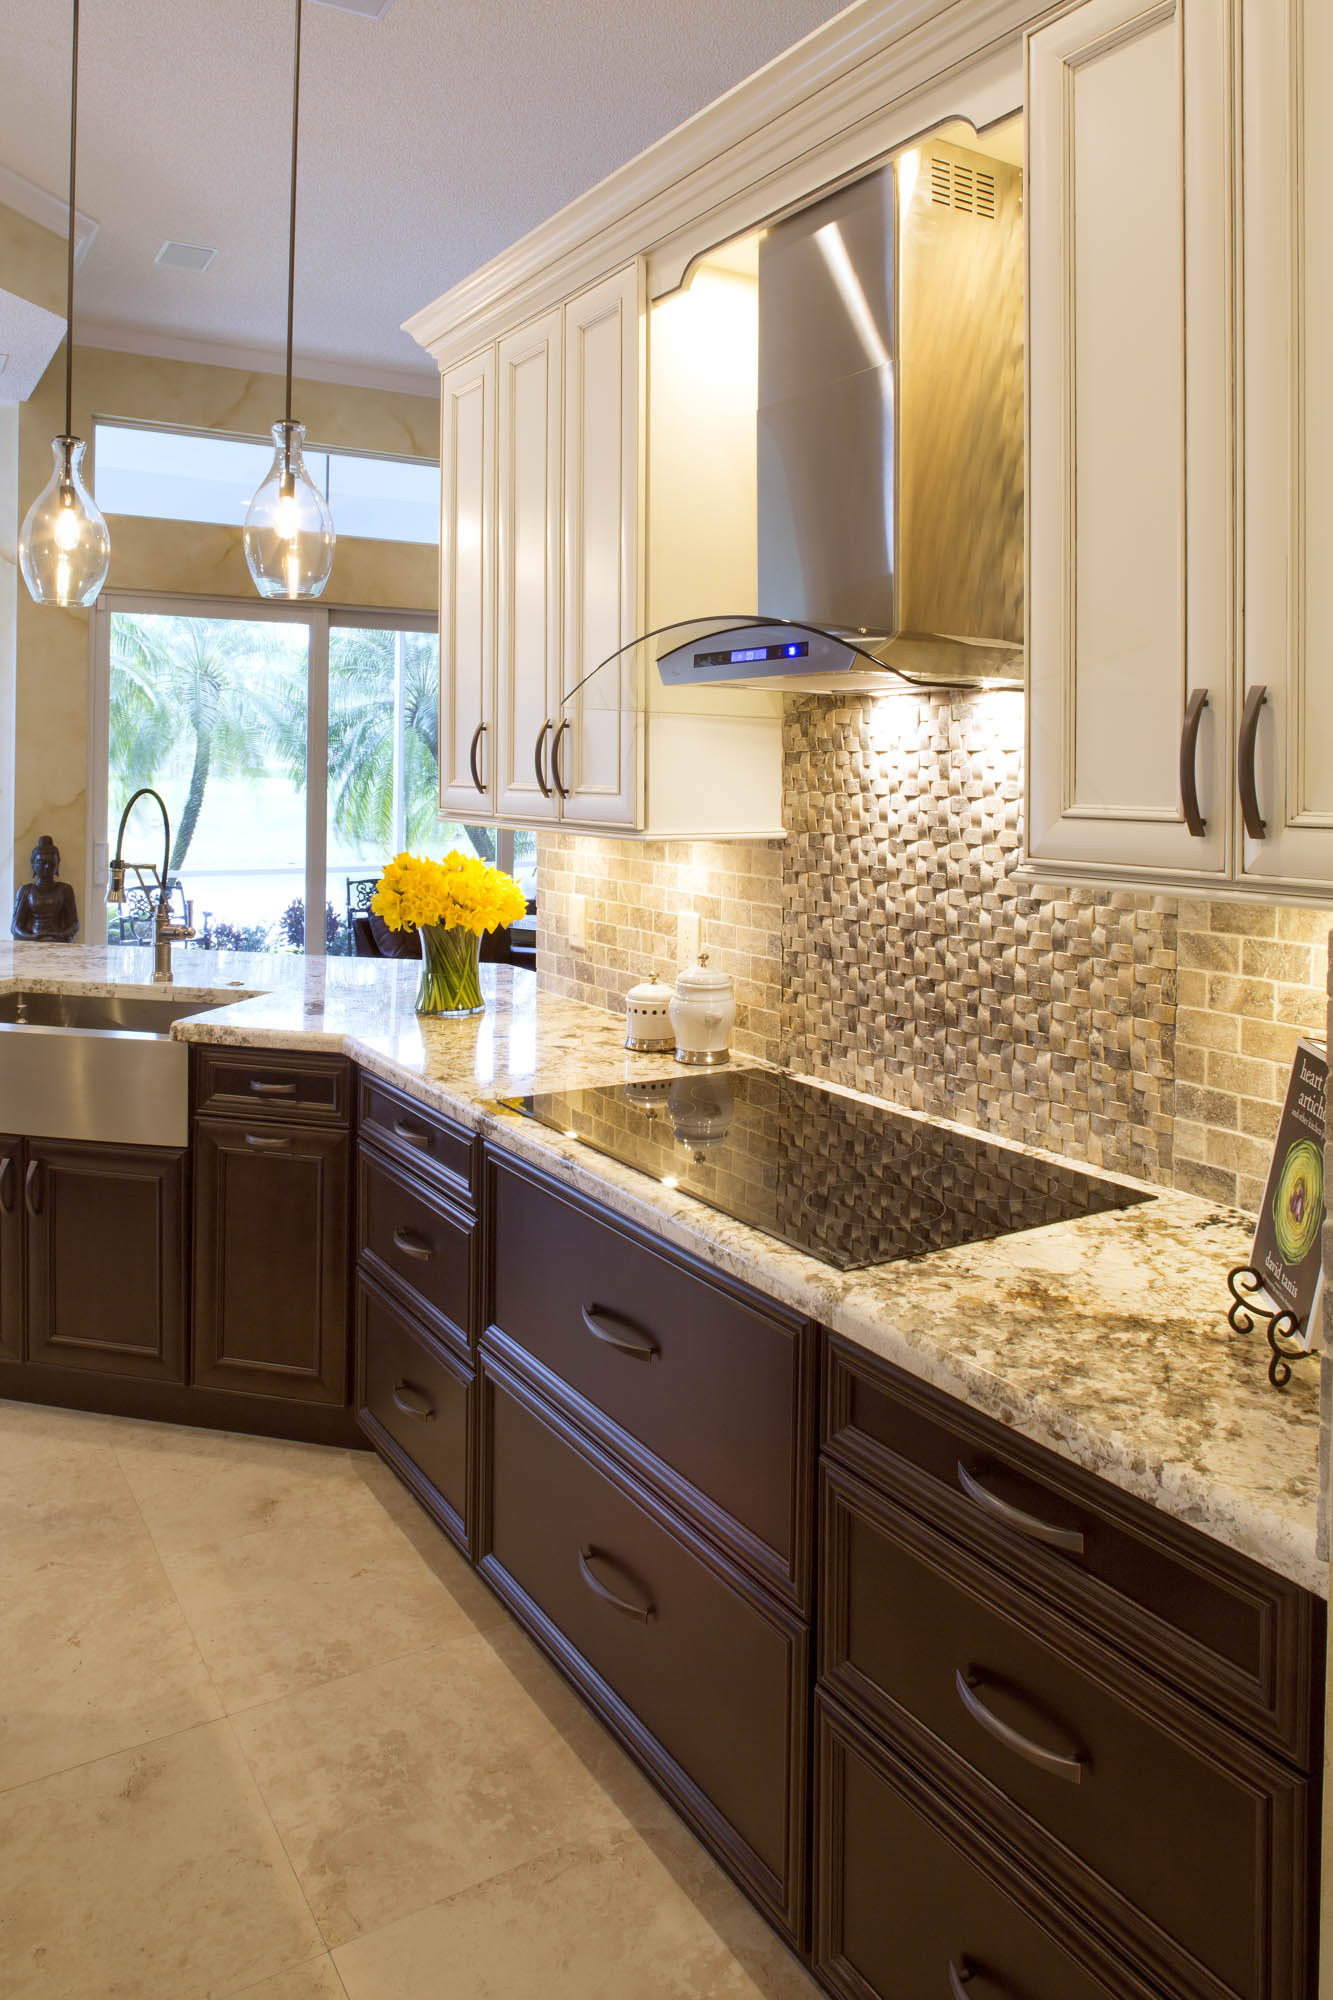 Stained Kitchen Base Cabinets In Espresso By Showplace Cabinetry   View 2